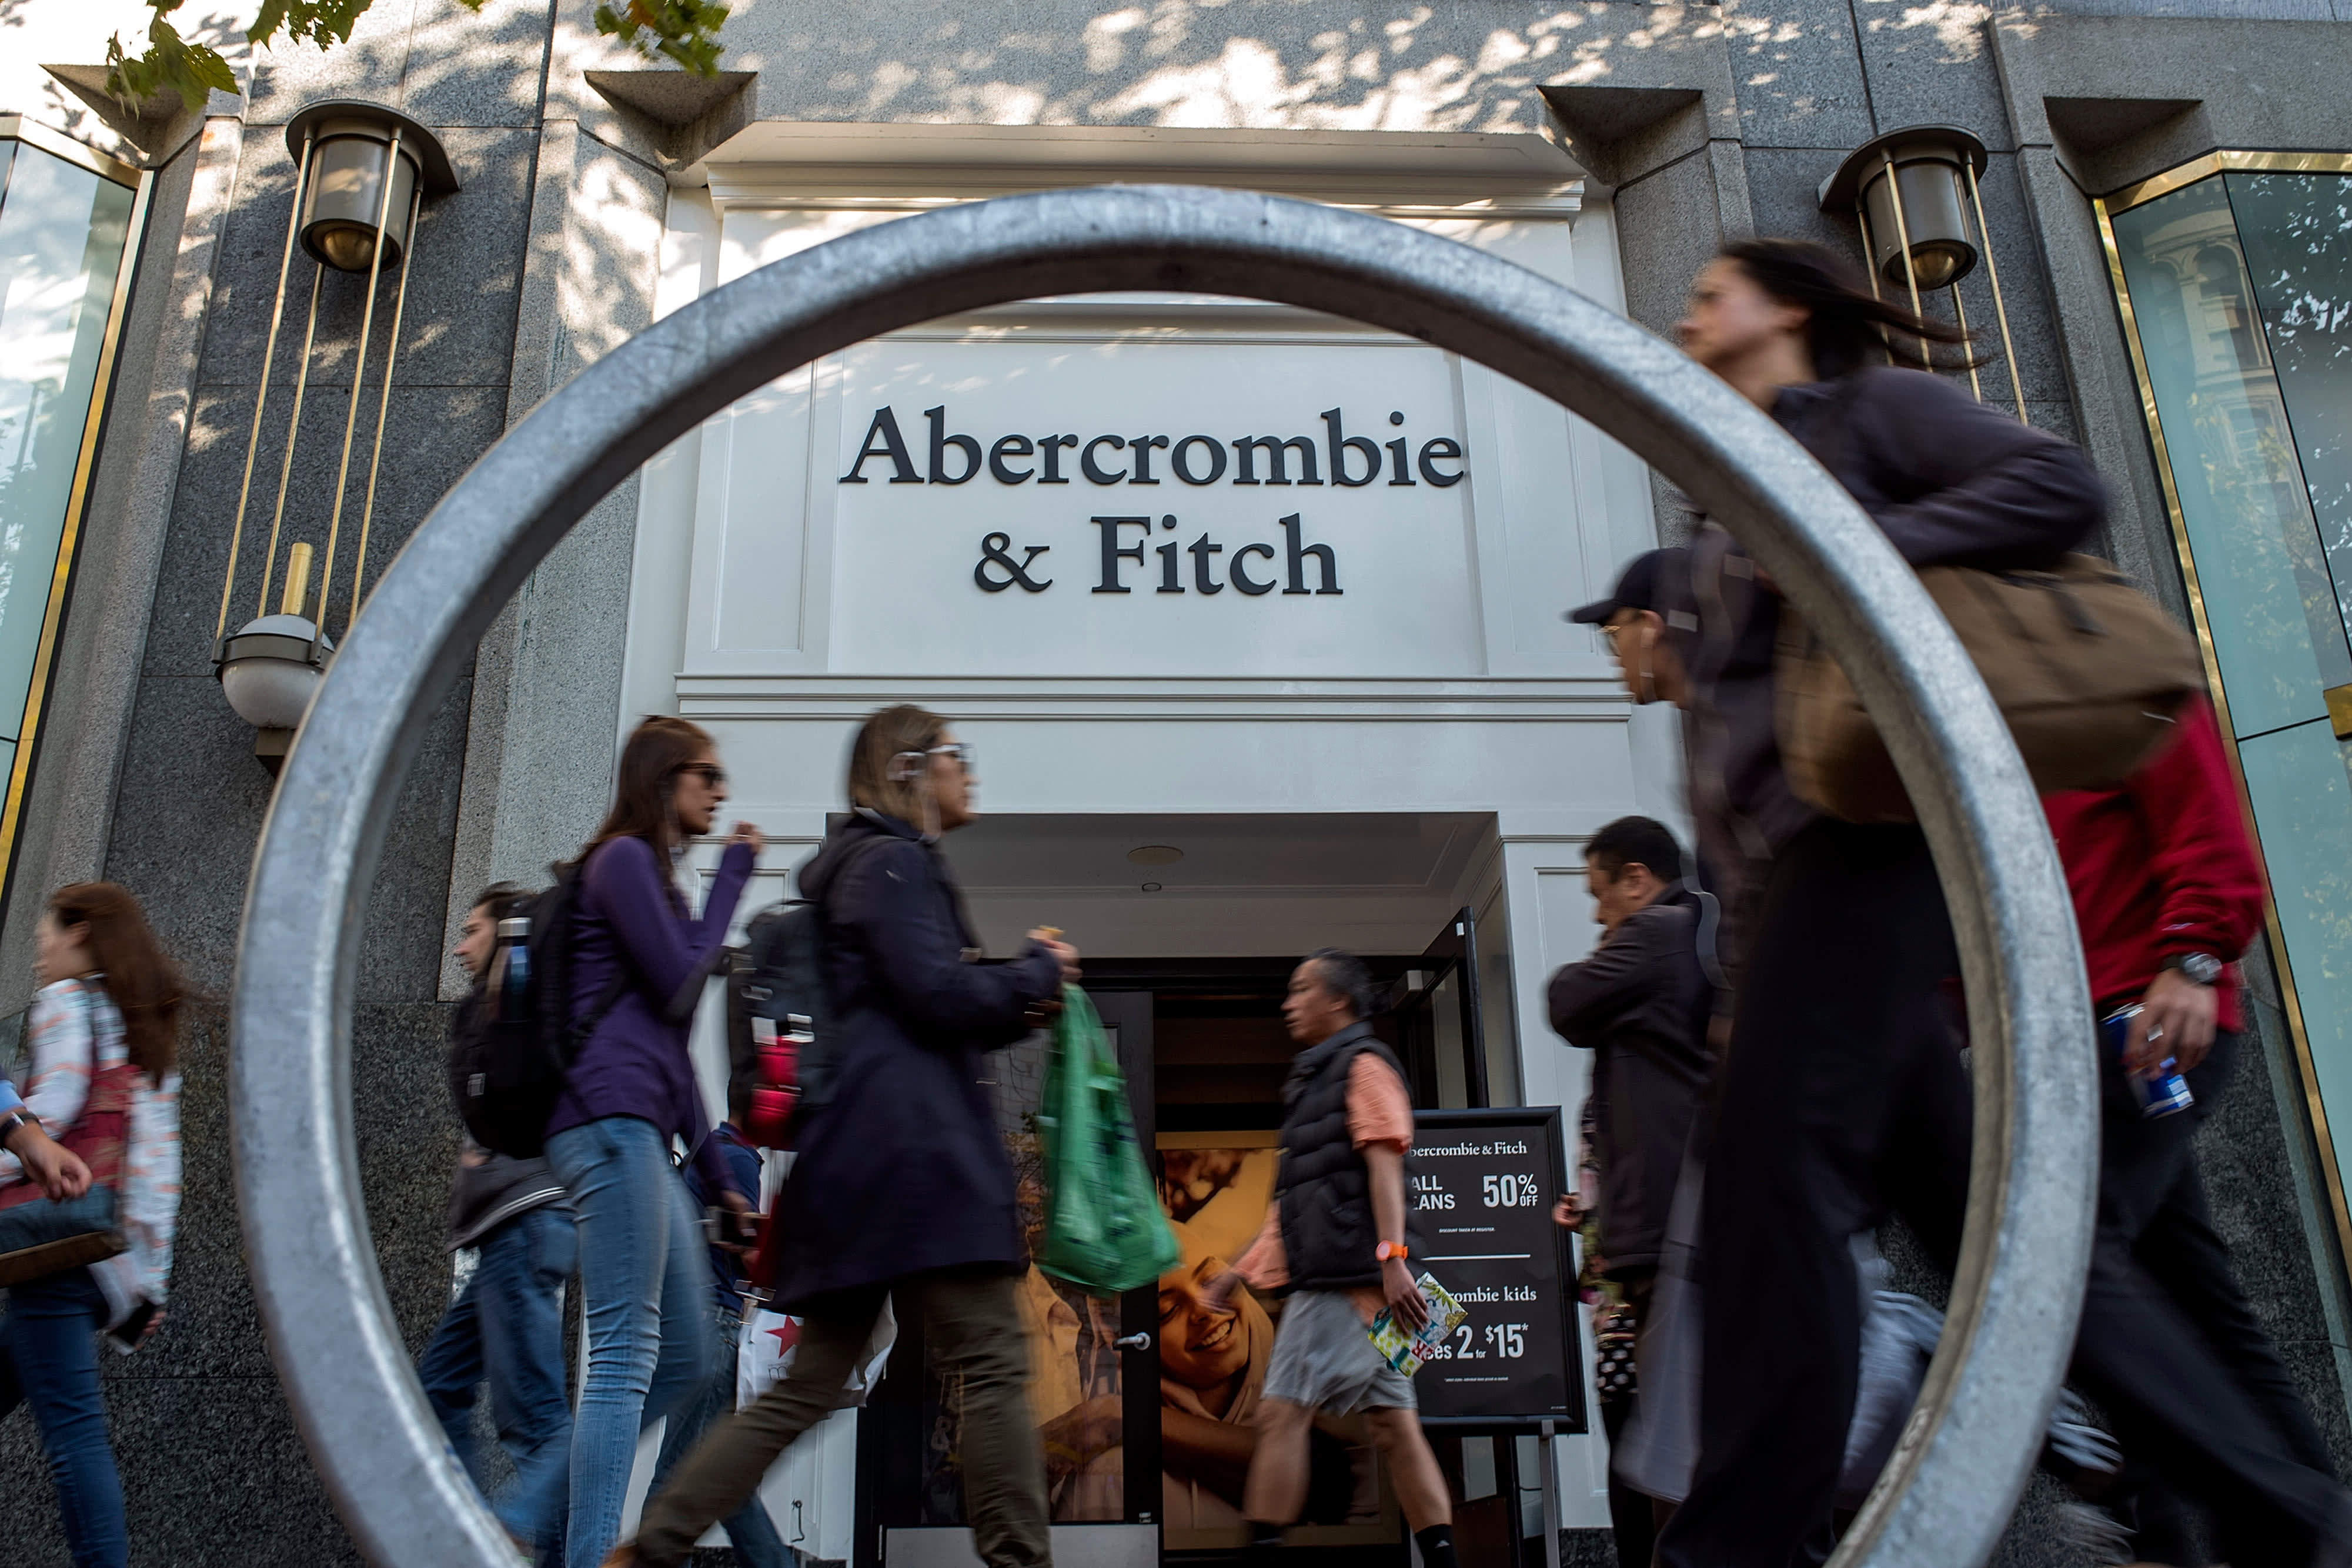 Here's how Abercrombie & Fitch ditched its past to try to bring back customers